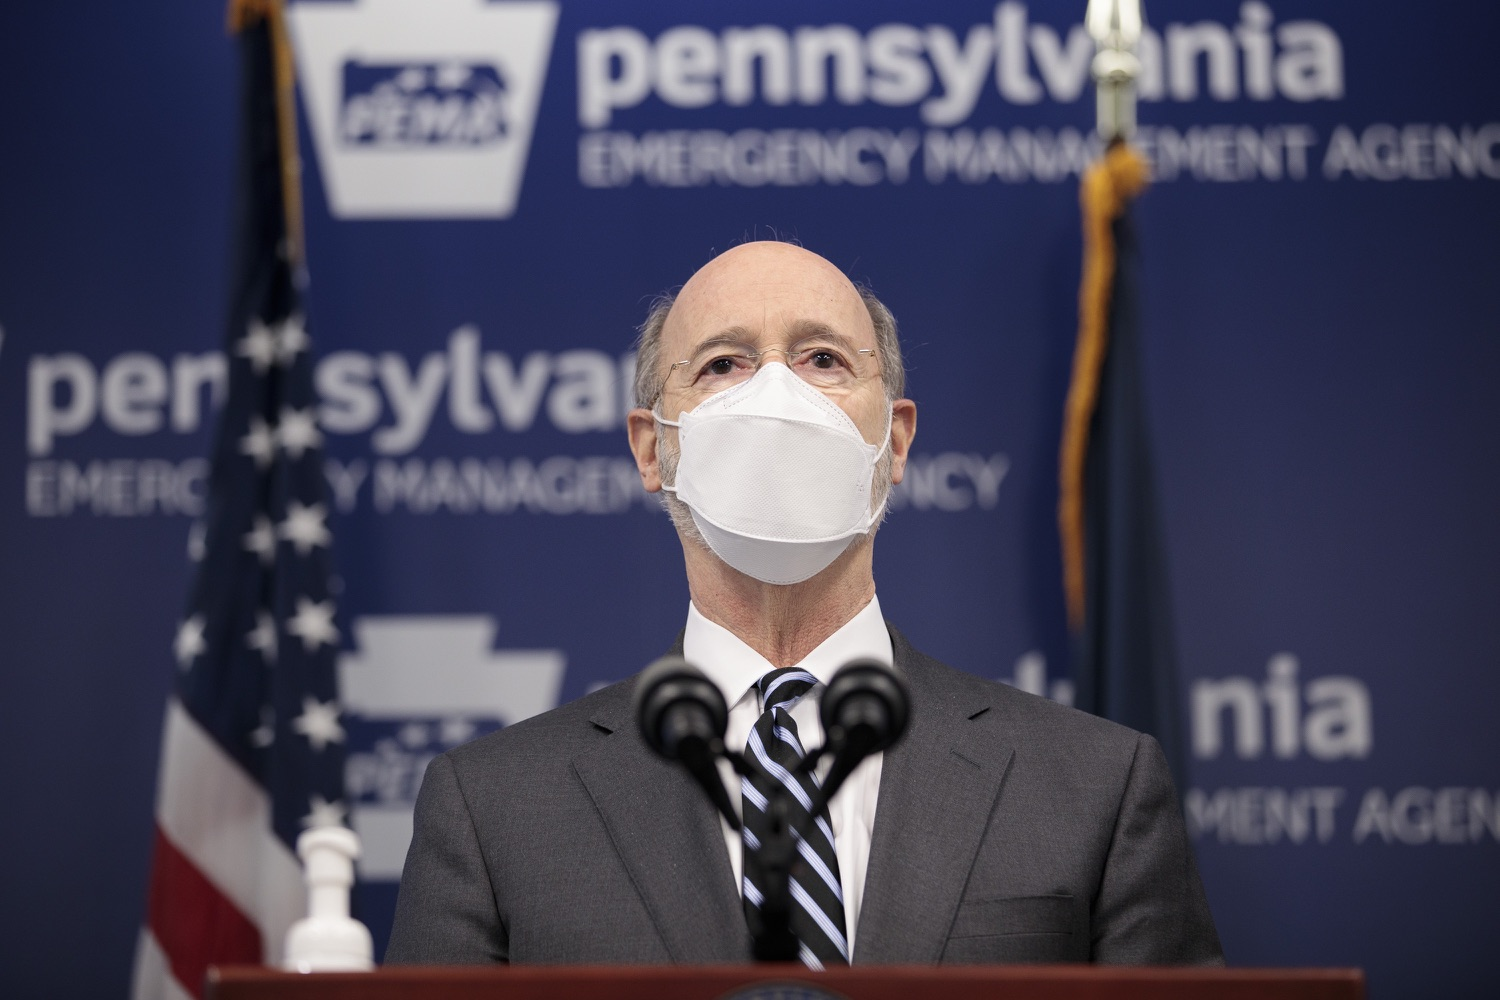 "<a href=""https://filesource.wostreaming.net/commonwealthofpa/photo/18521_gov_minimumWage_dz_14.jpg"" target=""_blank"">⇣ Download Photo<br></a>Pennsylvania Governor Tom Wolf answers questions from the press.  Building on his plan to cut personal income taxes for 2.8 million Pennsylvanians, Governor Tom Wolf wants to help thousands of essential workers struggling to buy food and avoid homelessness because of poverty wages. Today, the governor renewed his call to increase the states embarrassingly low minimum wage to $12 per hour on July 1, with annual increases of $0.50 until reaching $15 per hour on July 1, 2027. FEBRUARY 09, 2021 - HARRISBURG, PA"